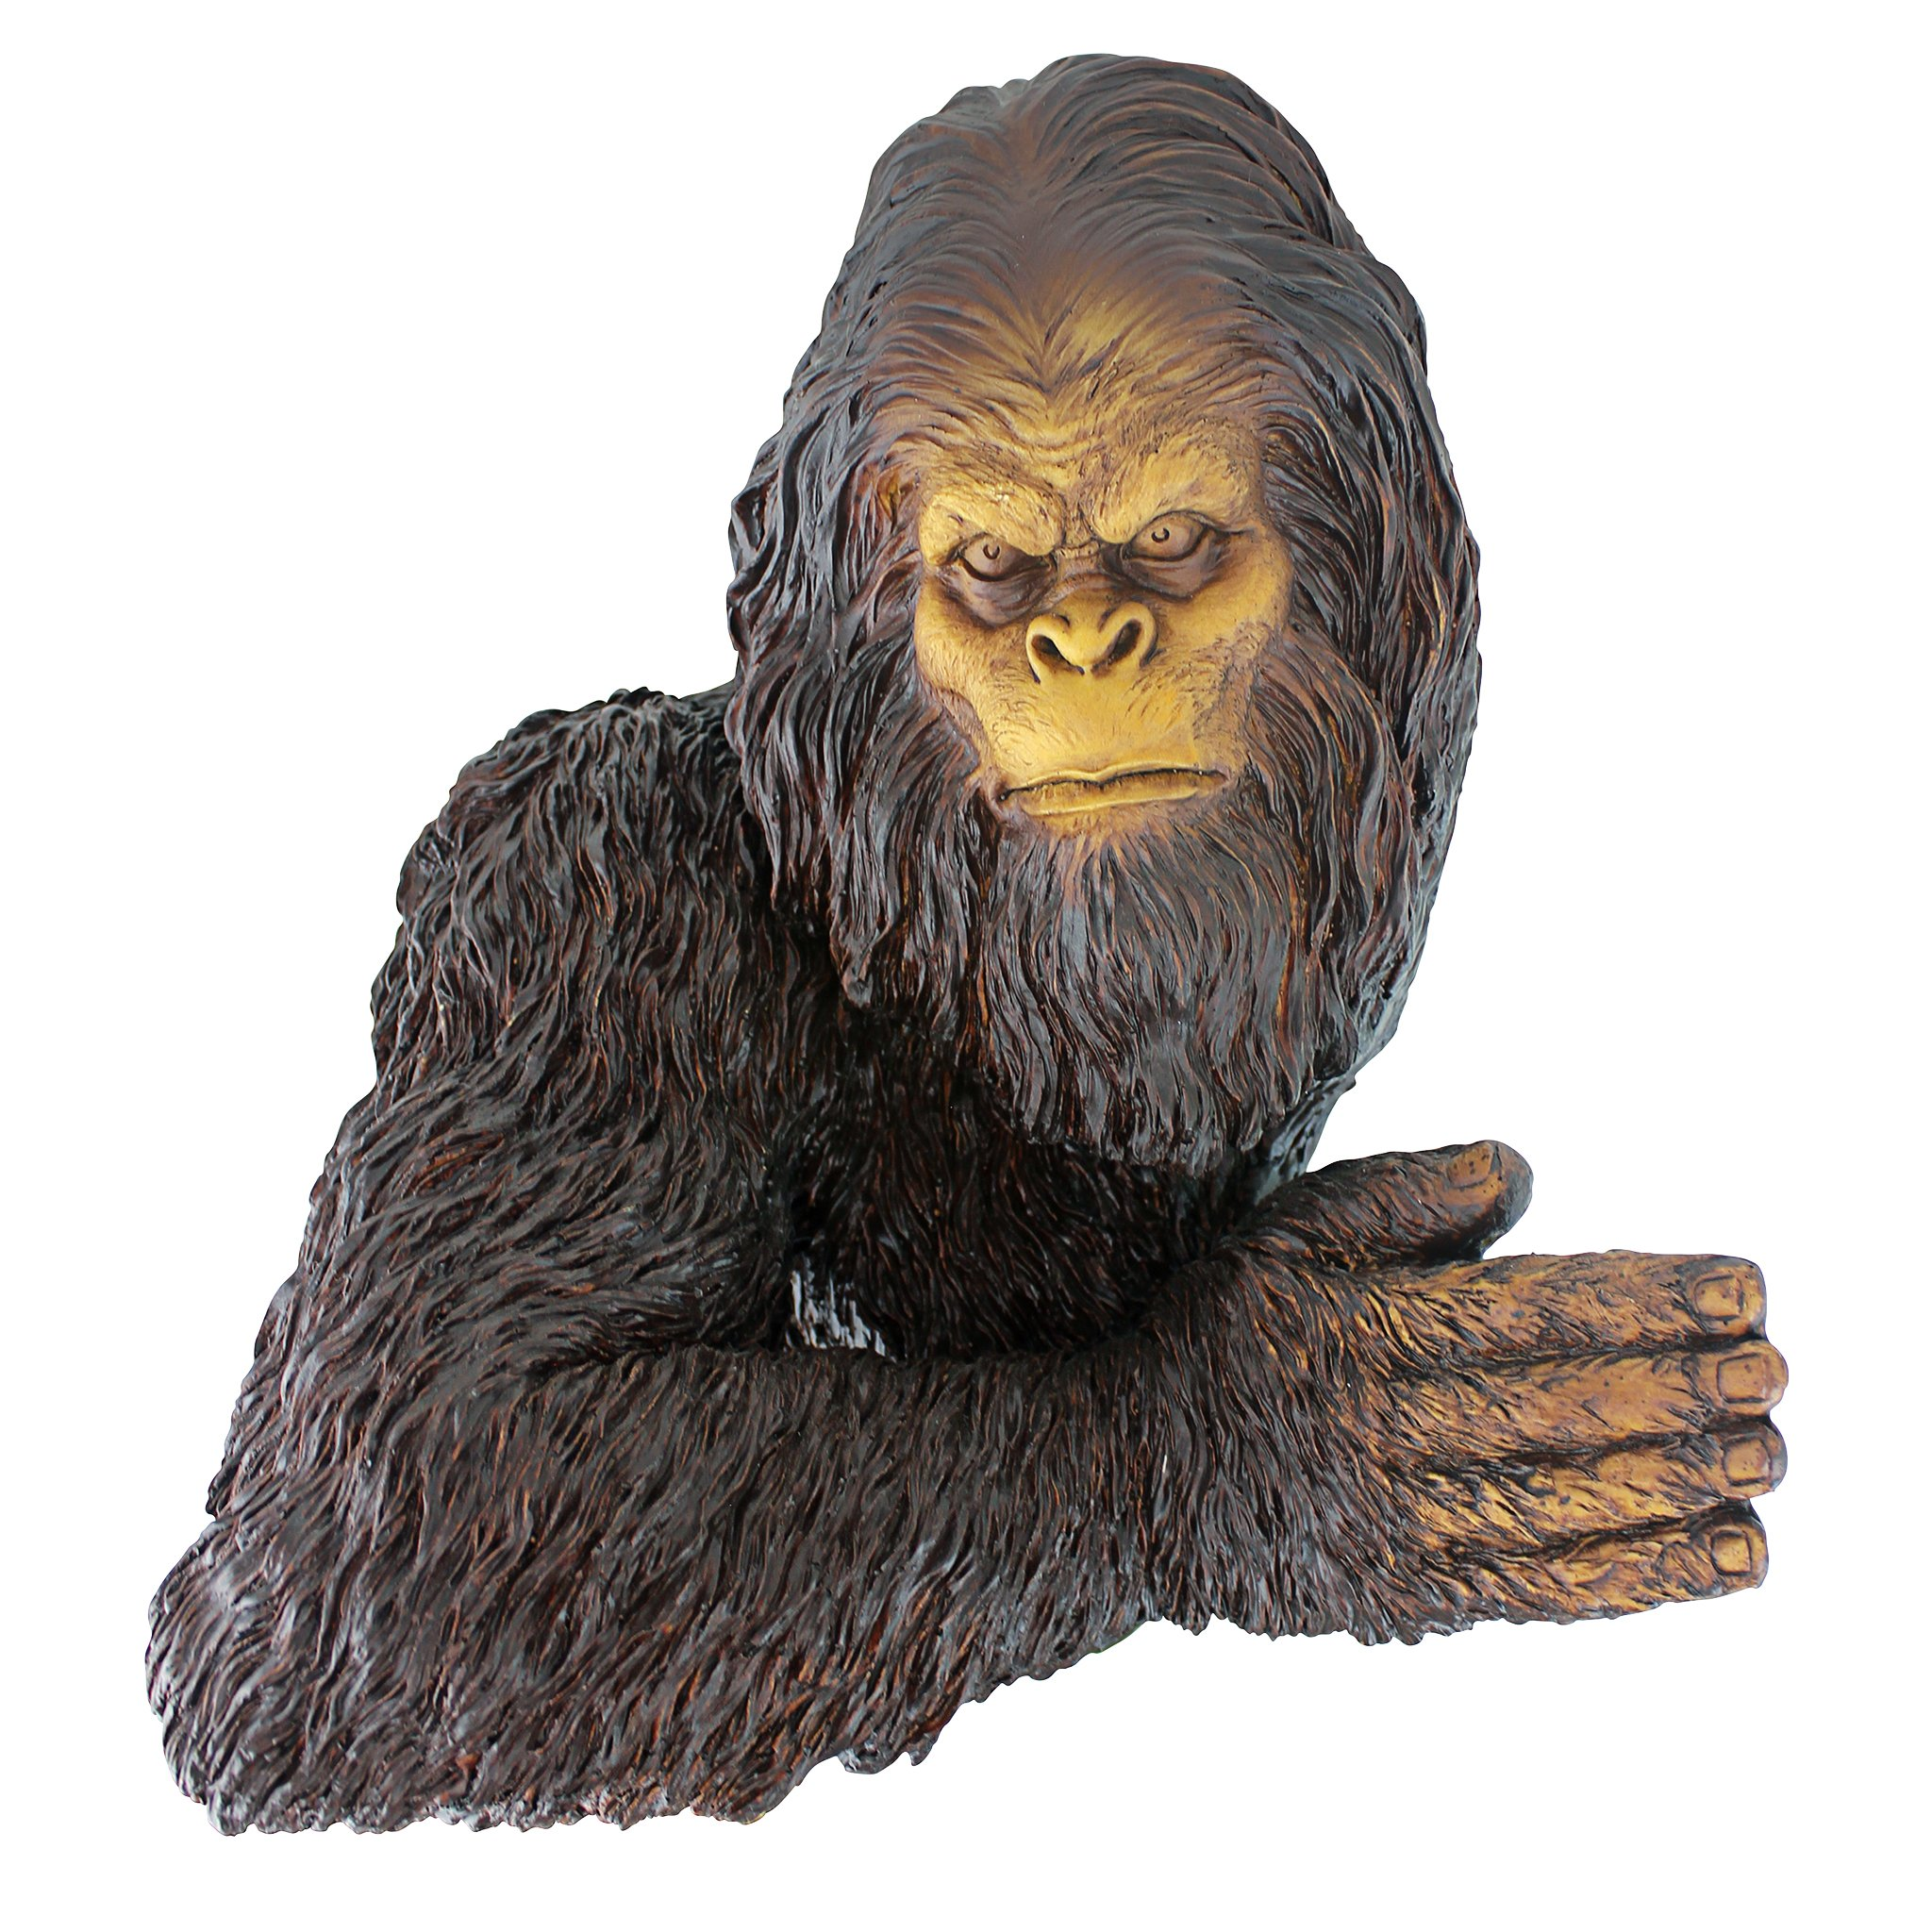 Design Toscano Bigfoot the Bashful Yeti Garden Tree Sculpture, 15 Inch, Polyresin, Full Color by Design Toscano (Image #1)